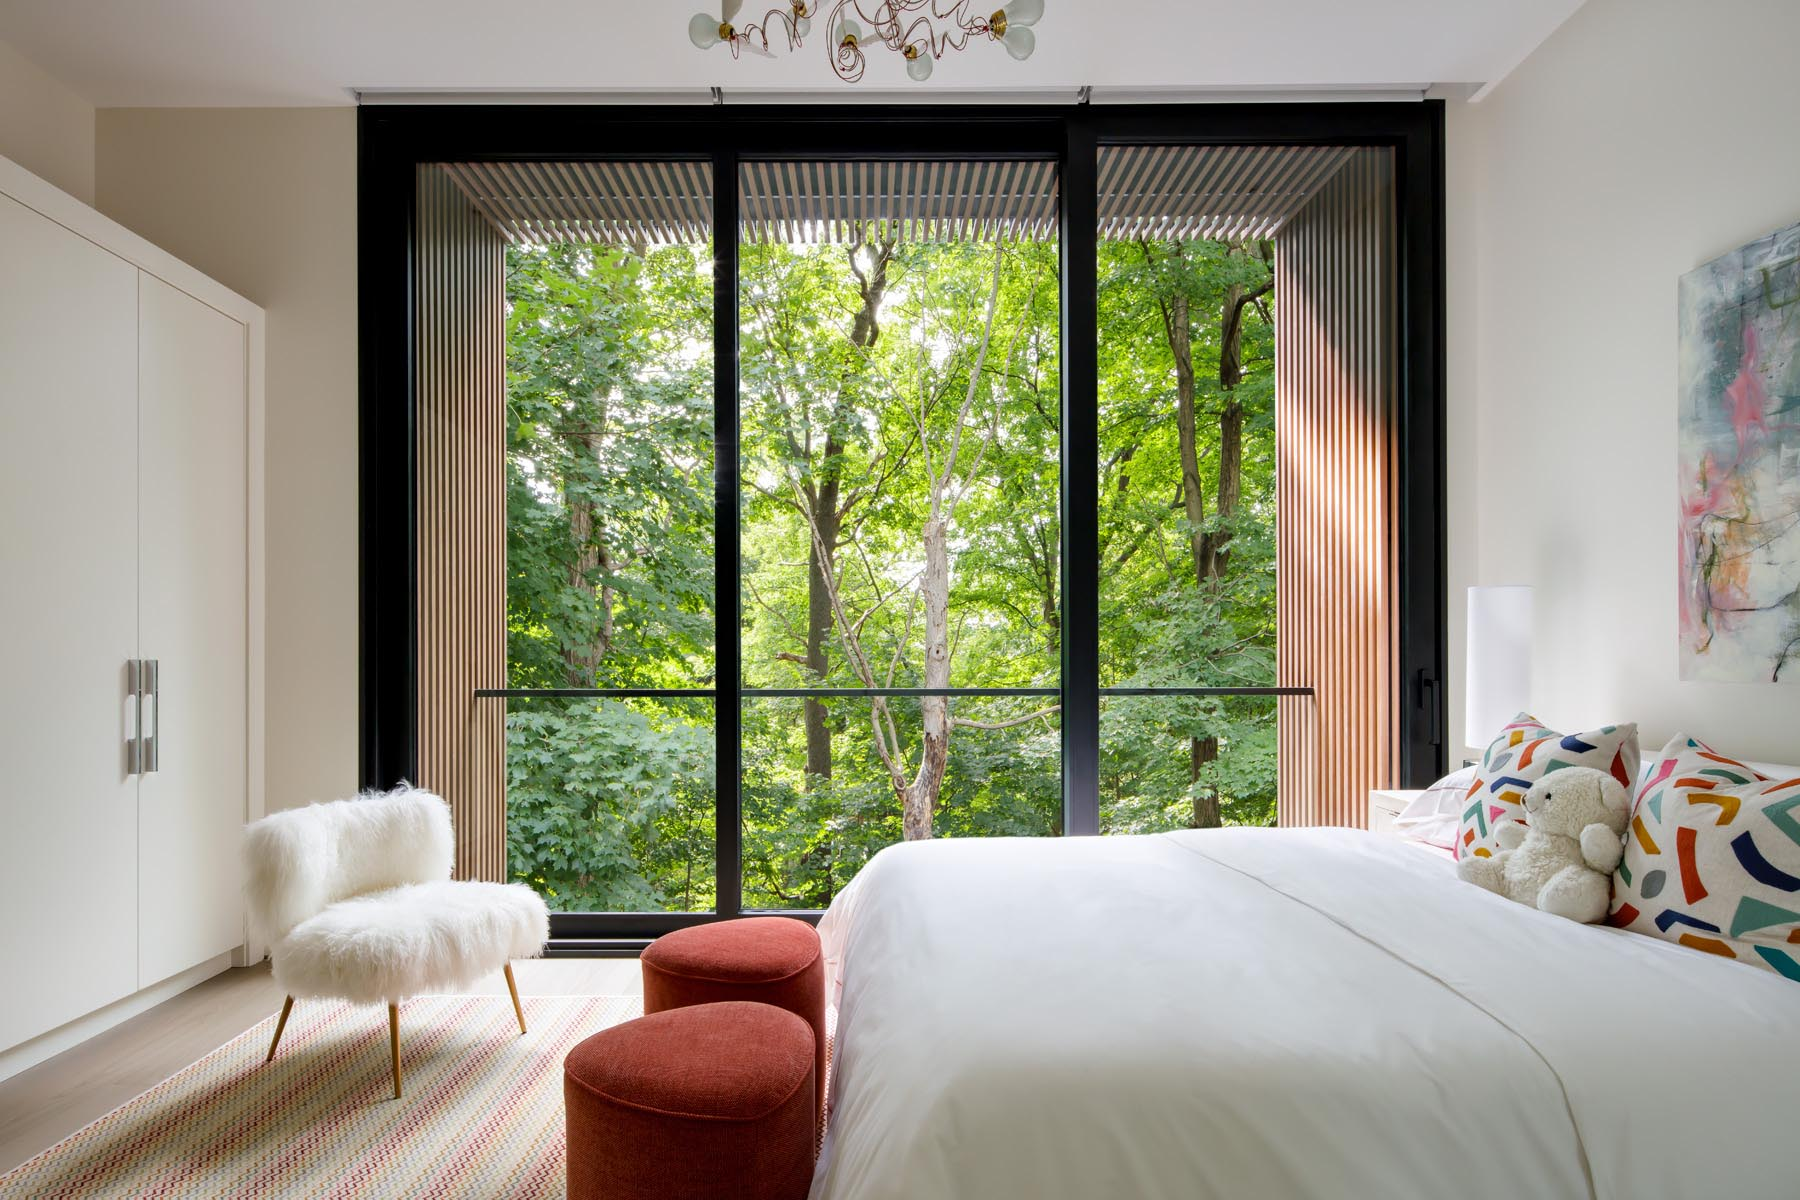 A modern bedroom with a glass door that opens to a small balcony with tree views.